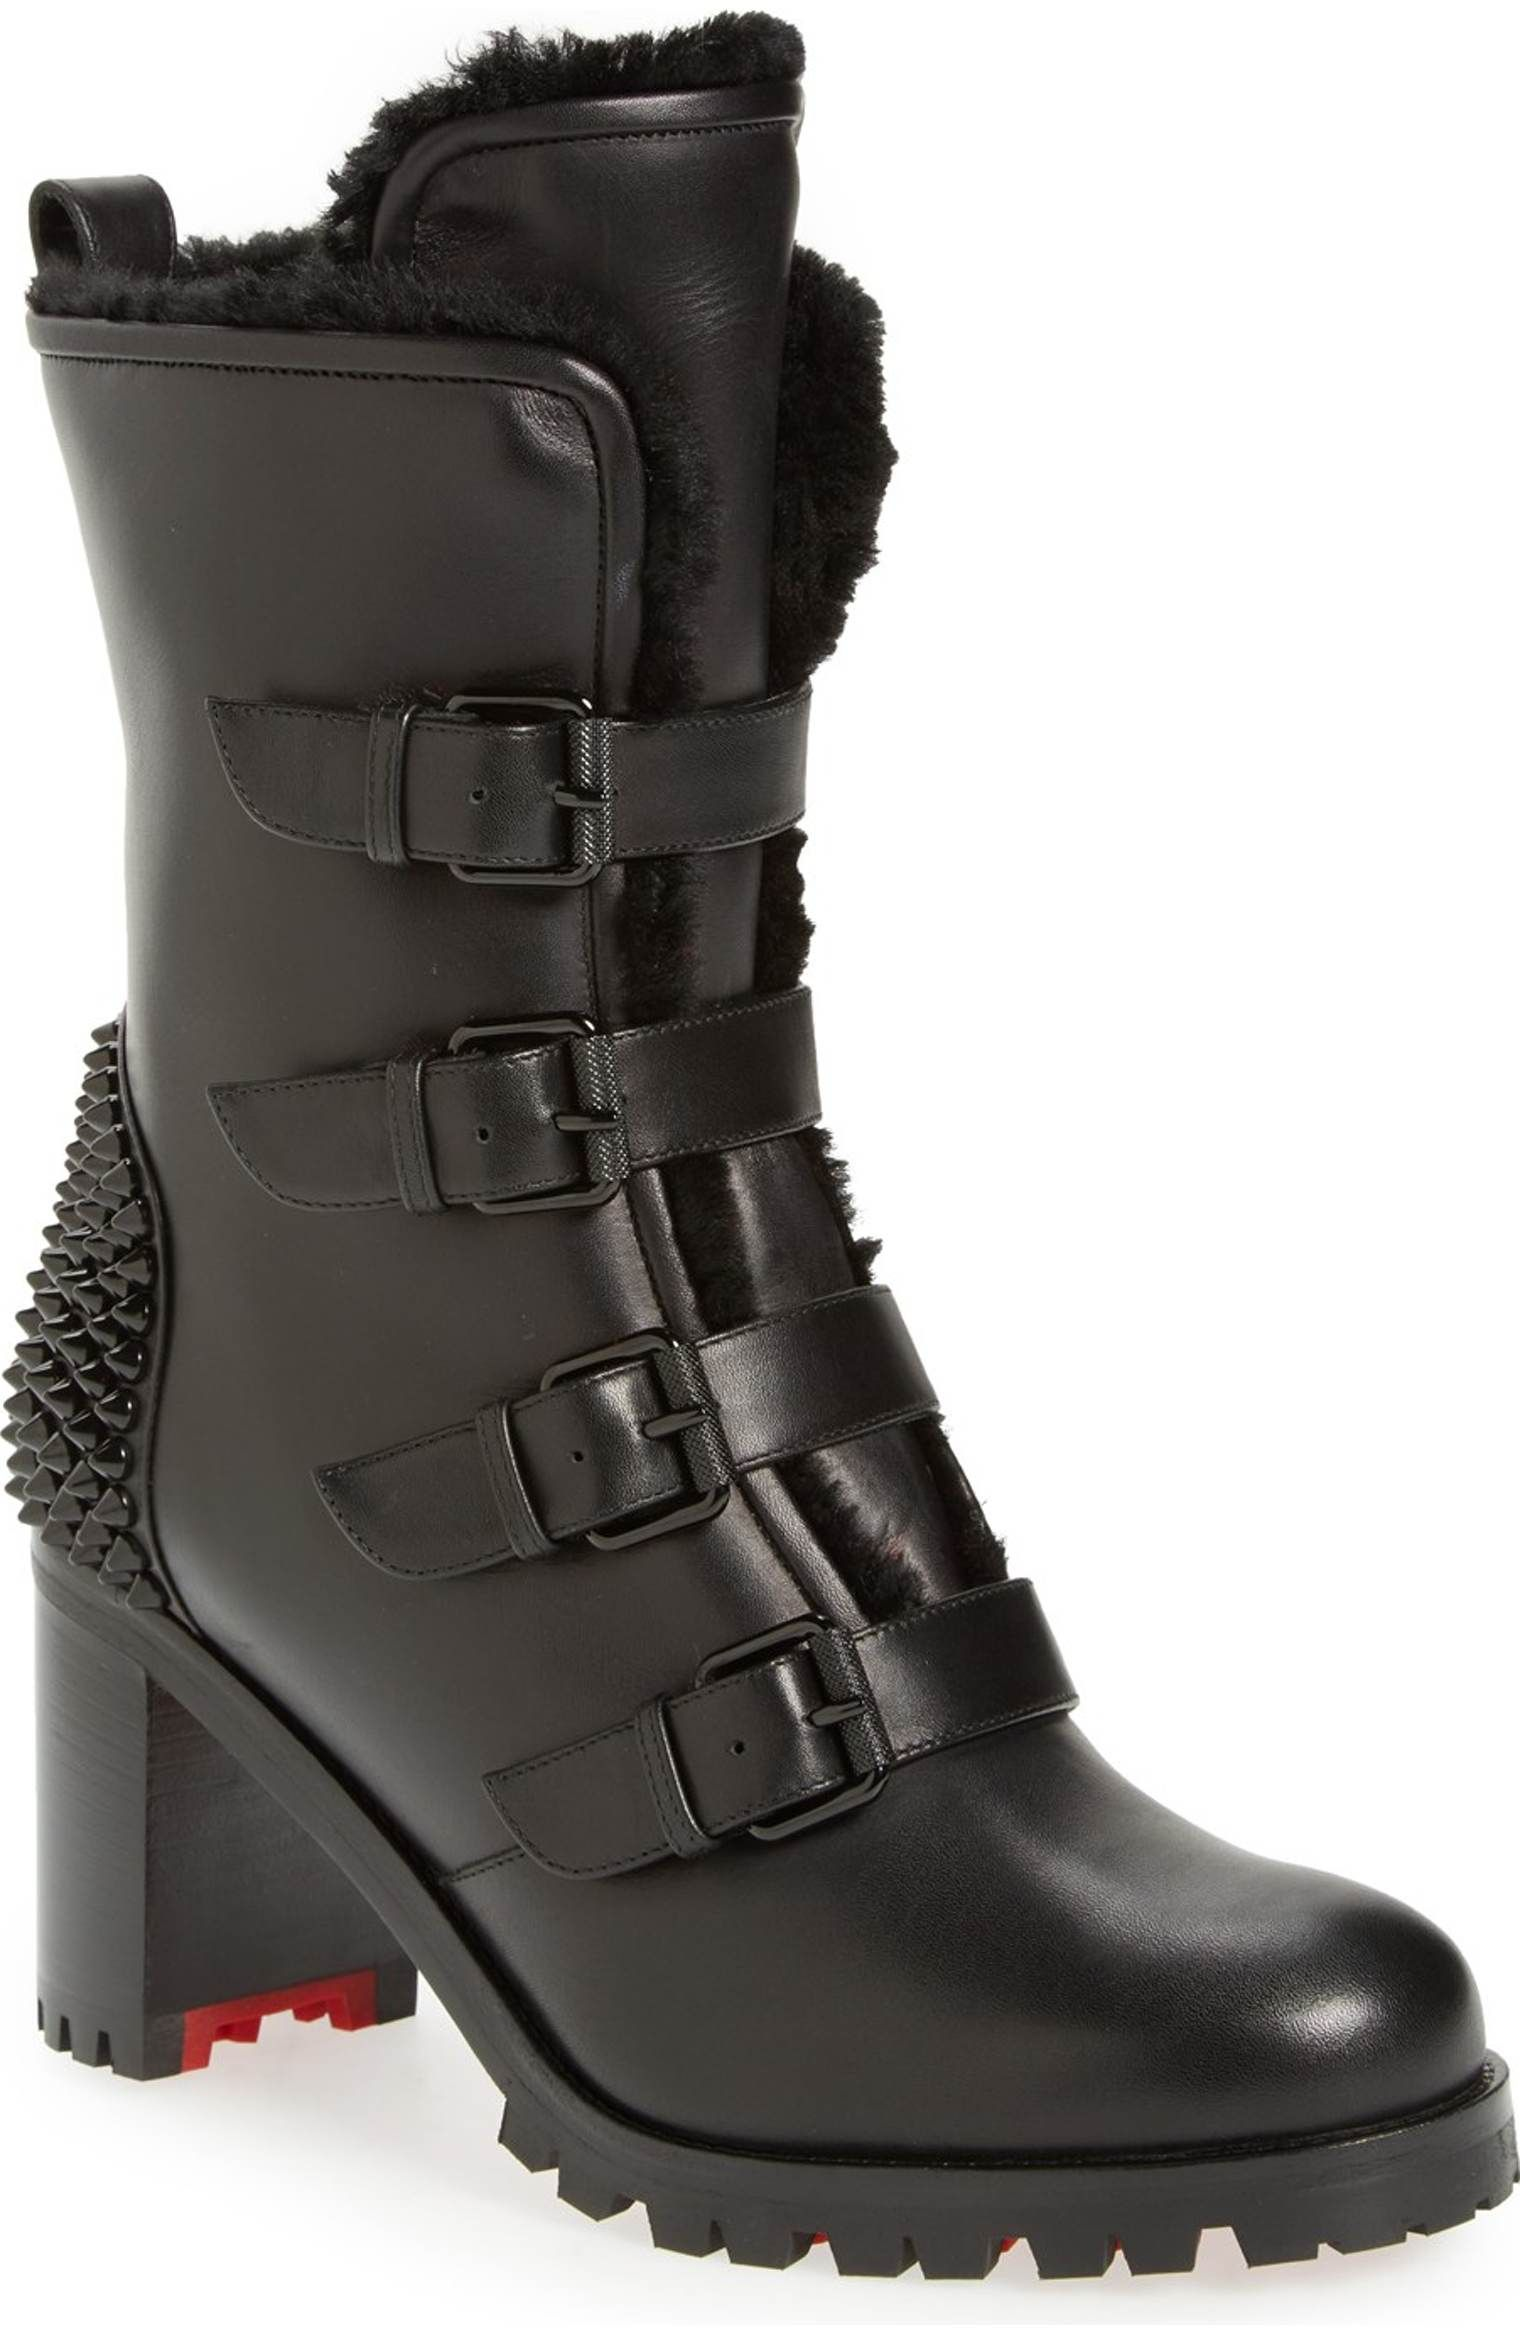 49365e21d38 Main Image - Christian Louboutin 'Glorymount' Studded Buckle Boot ...